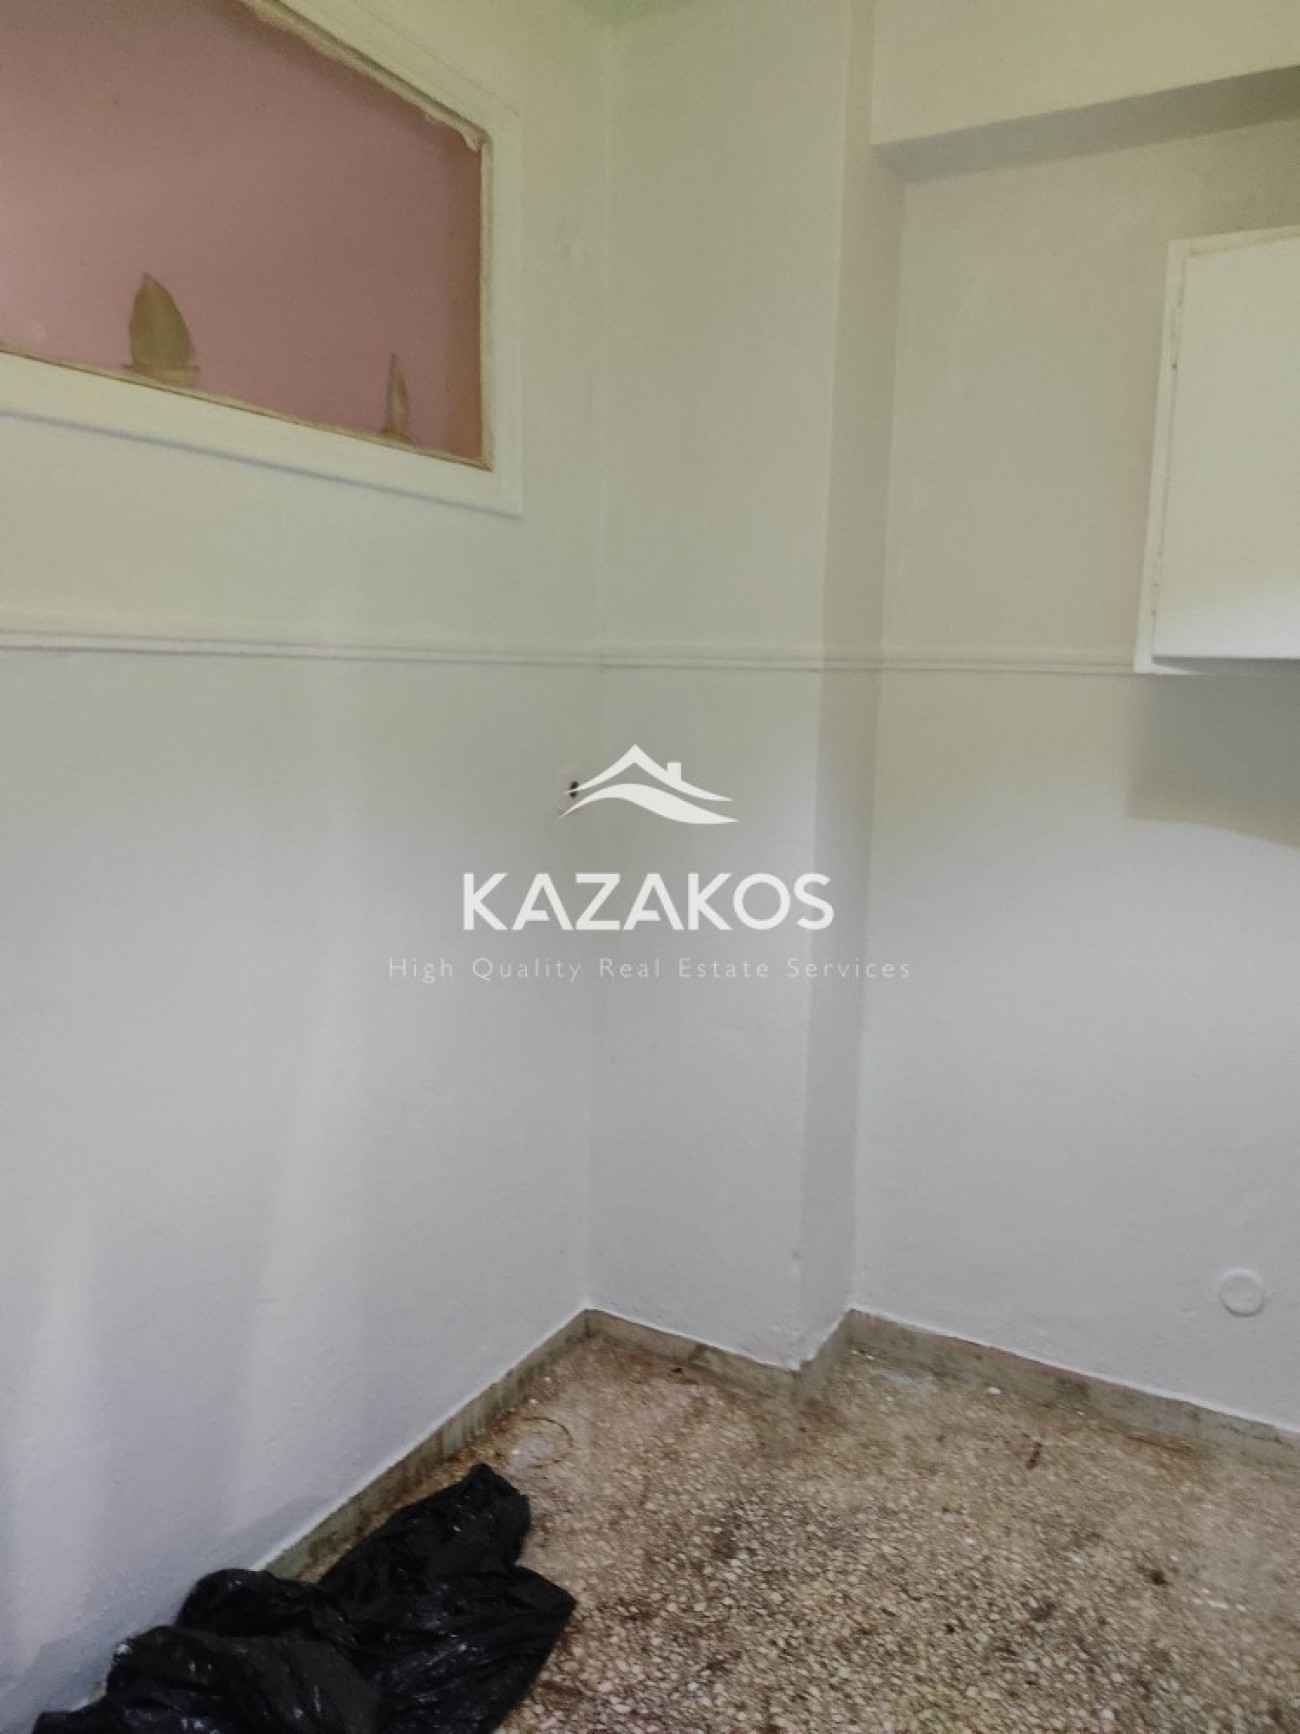 Townhouse for Sale in Amerikis Square, Athens City Center, Greece